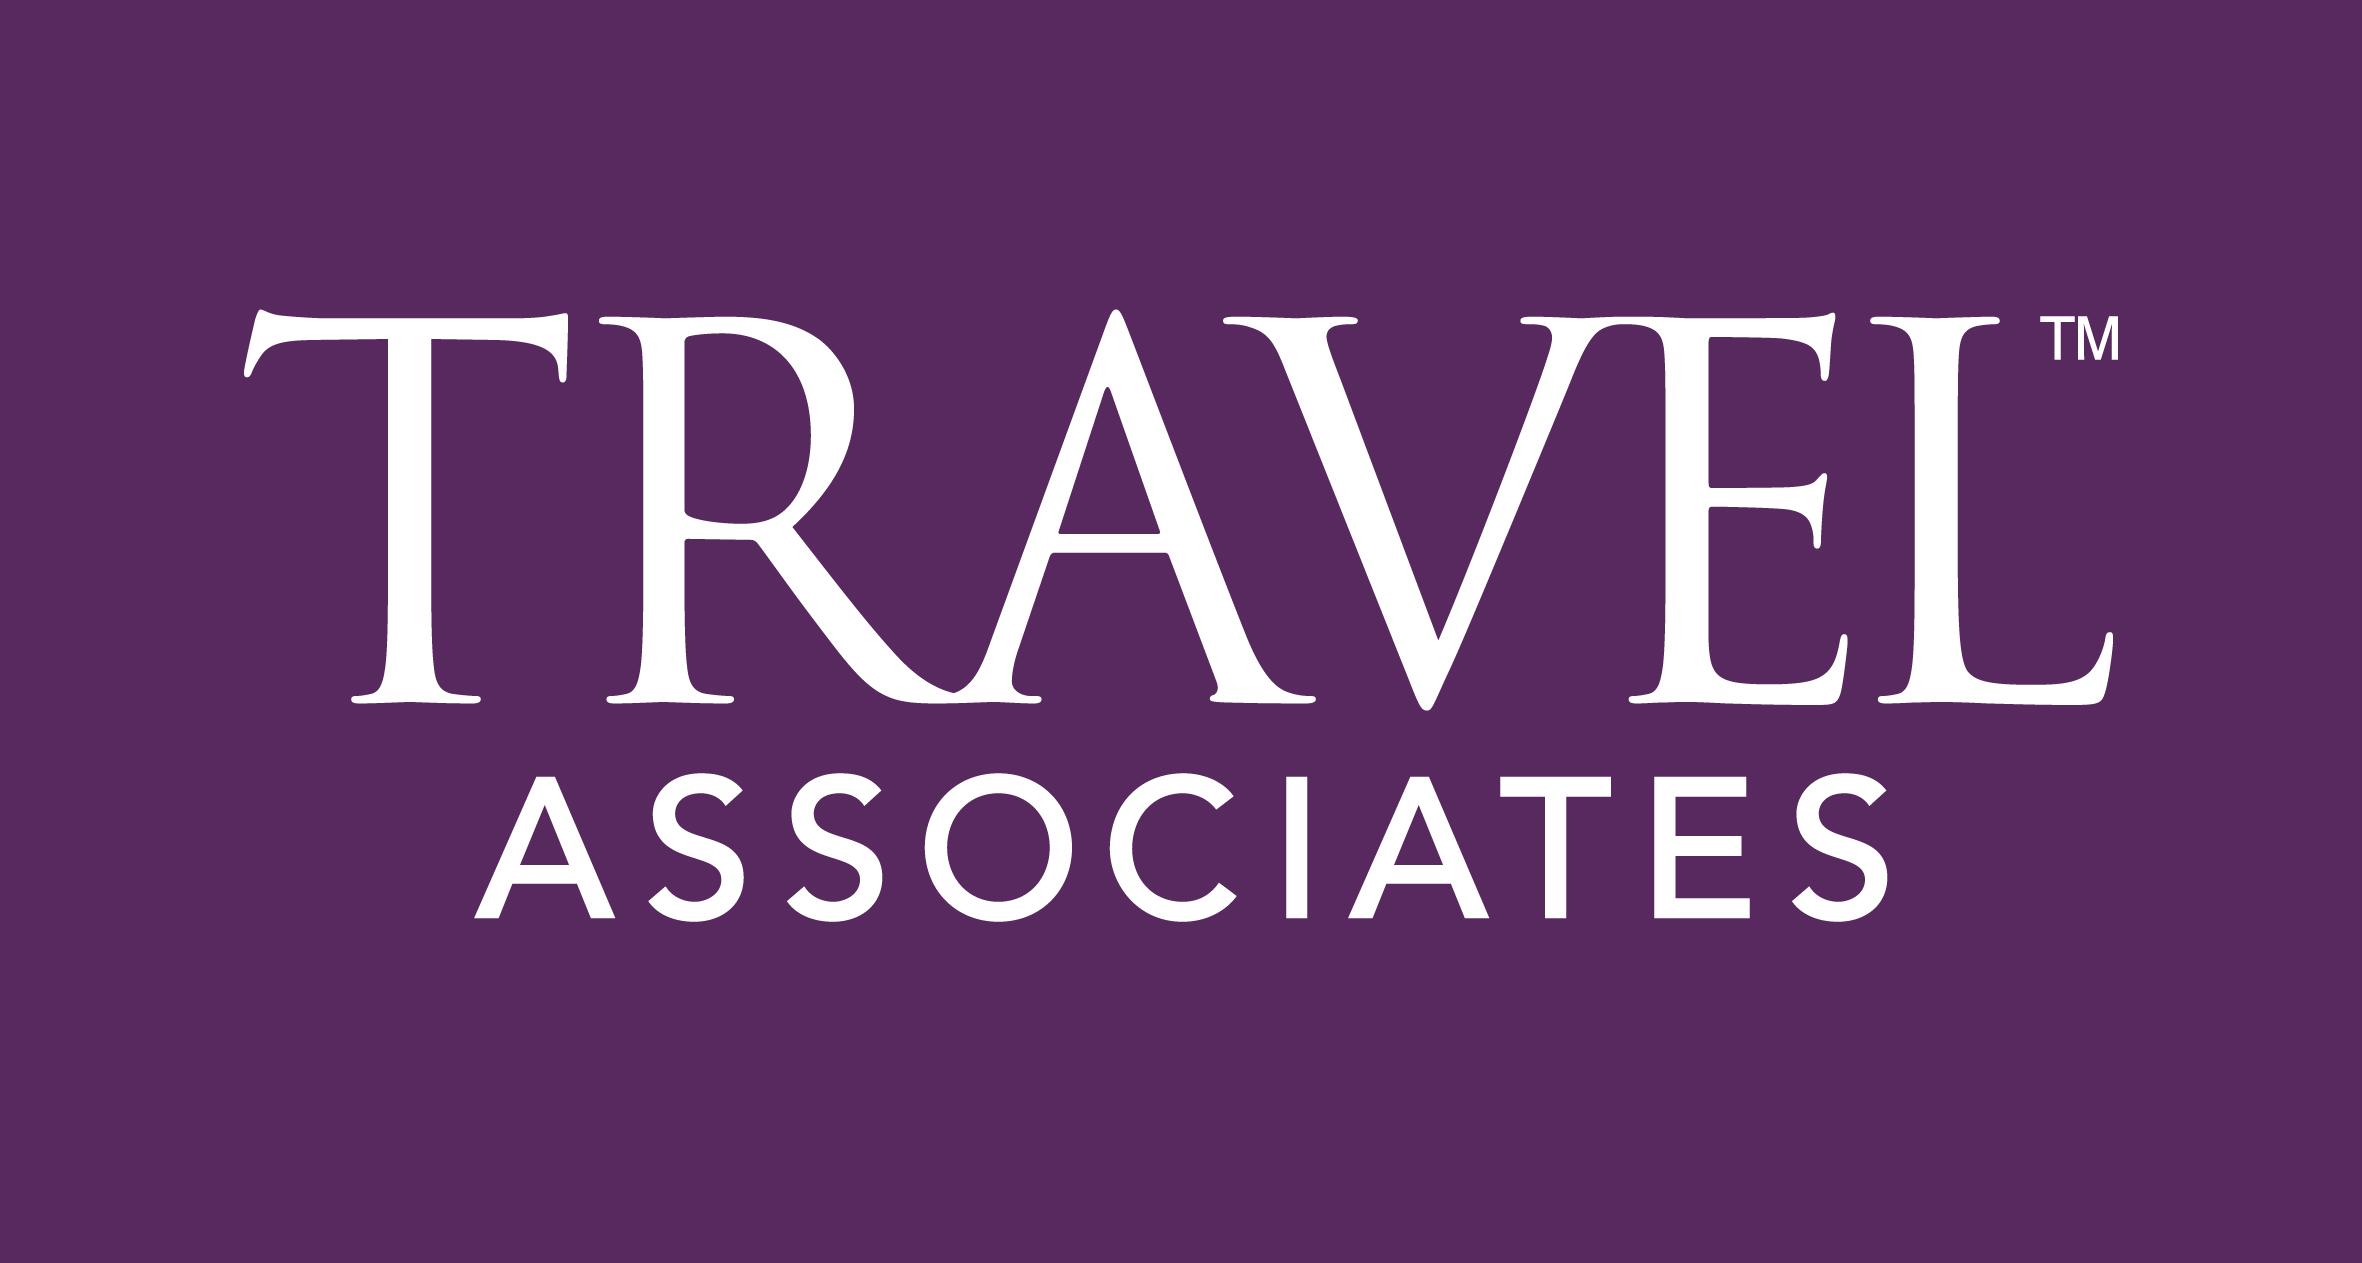 TRAVEL ASSOCIATES Tweed Heads South Logo